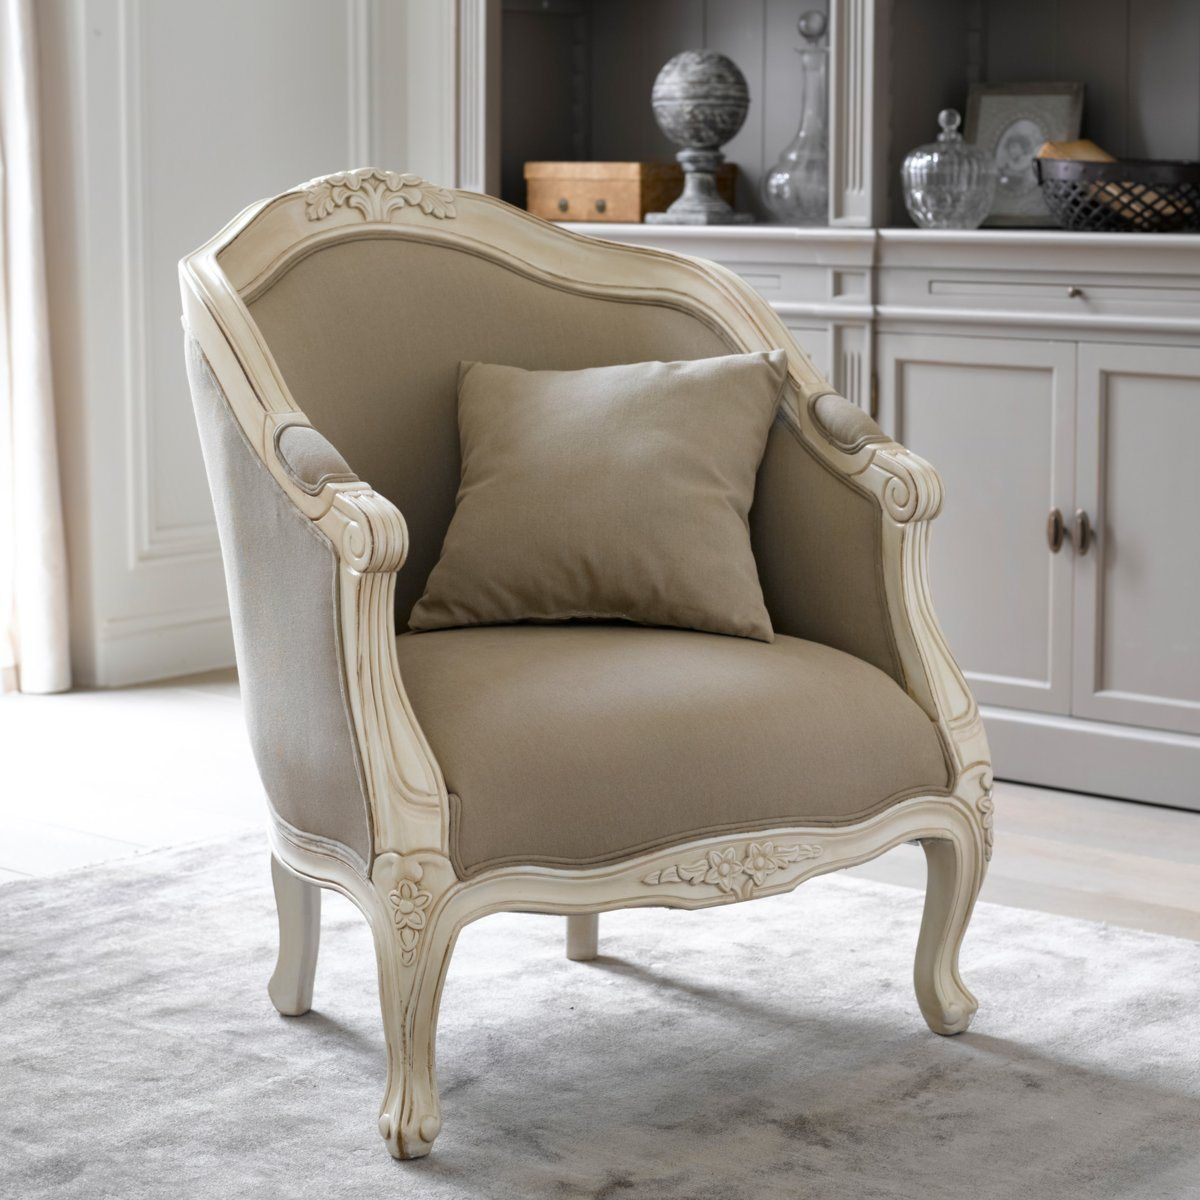 fauteuil berg re nottingham la redoute interieurs la redoute fauteuils pinterest interiors. Black Bedroom Furniture Sets. Home Design Ideas